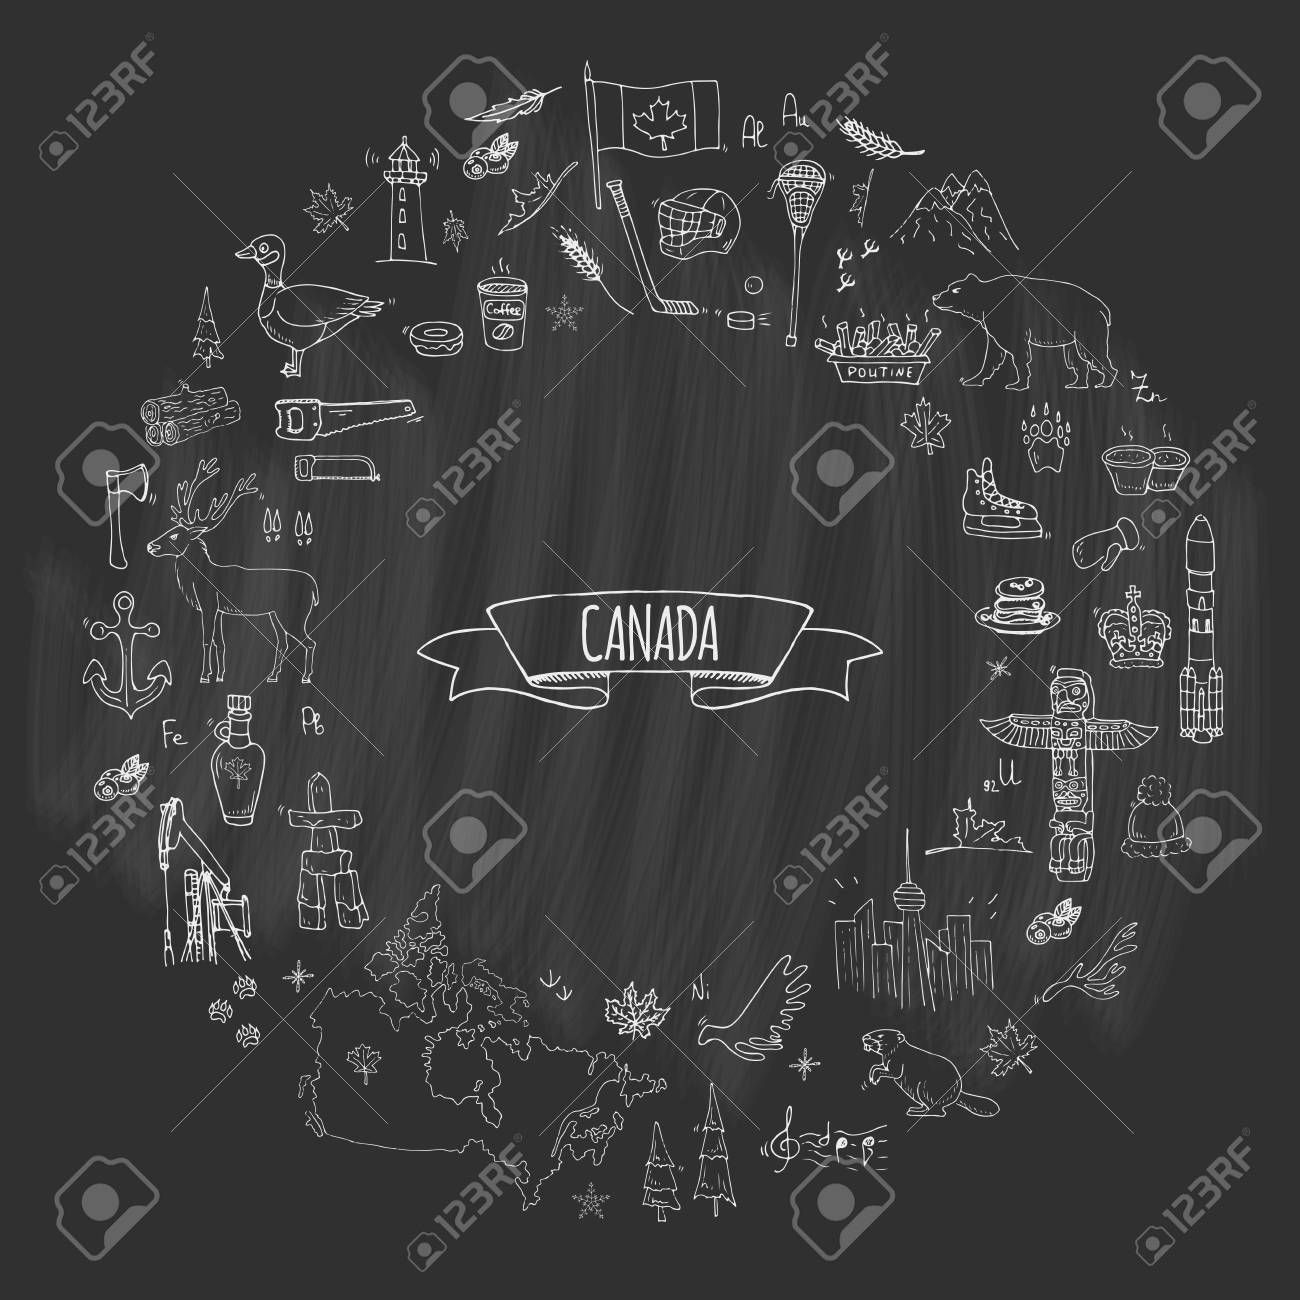 Hand drawn doodle Canada icons set Vector illustration